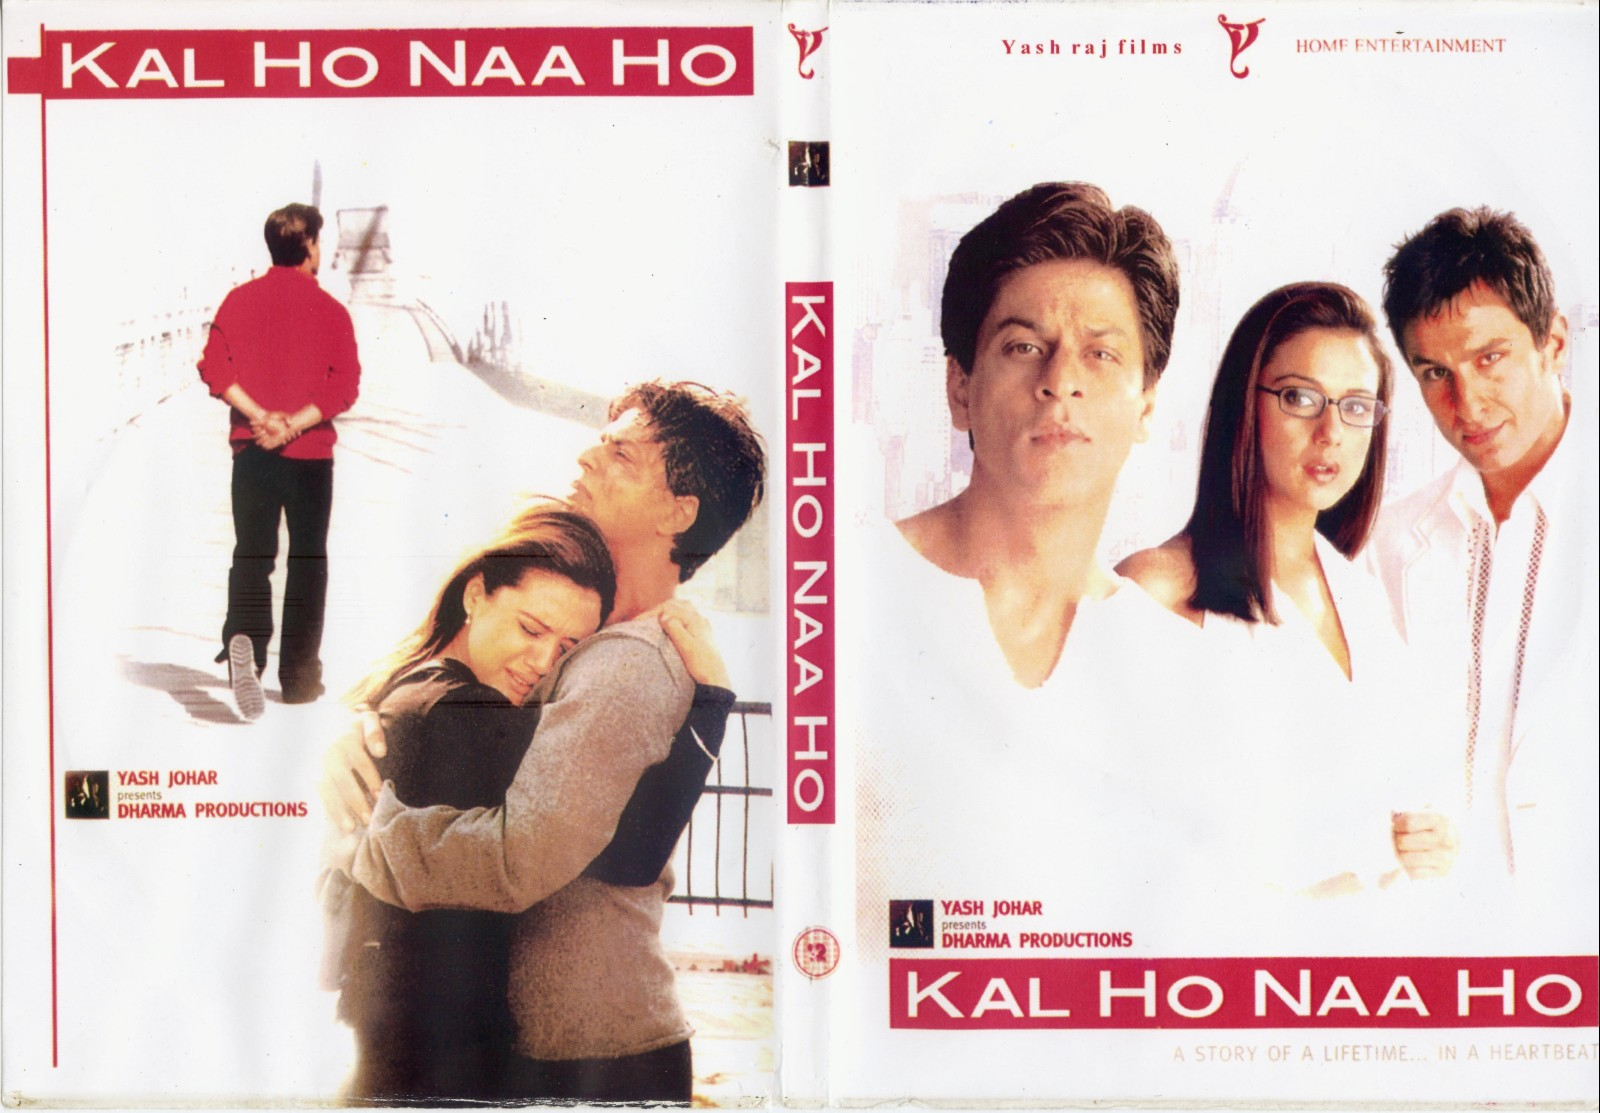 Kal ho na ho pictures Ganapati Images HD 3D Pictures, Ganesh Wallpapers